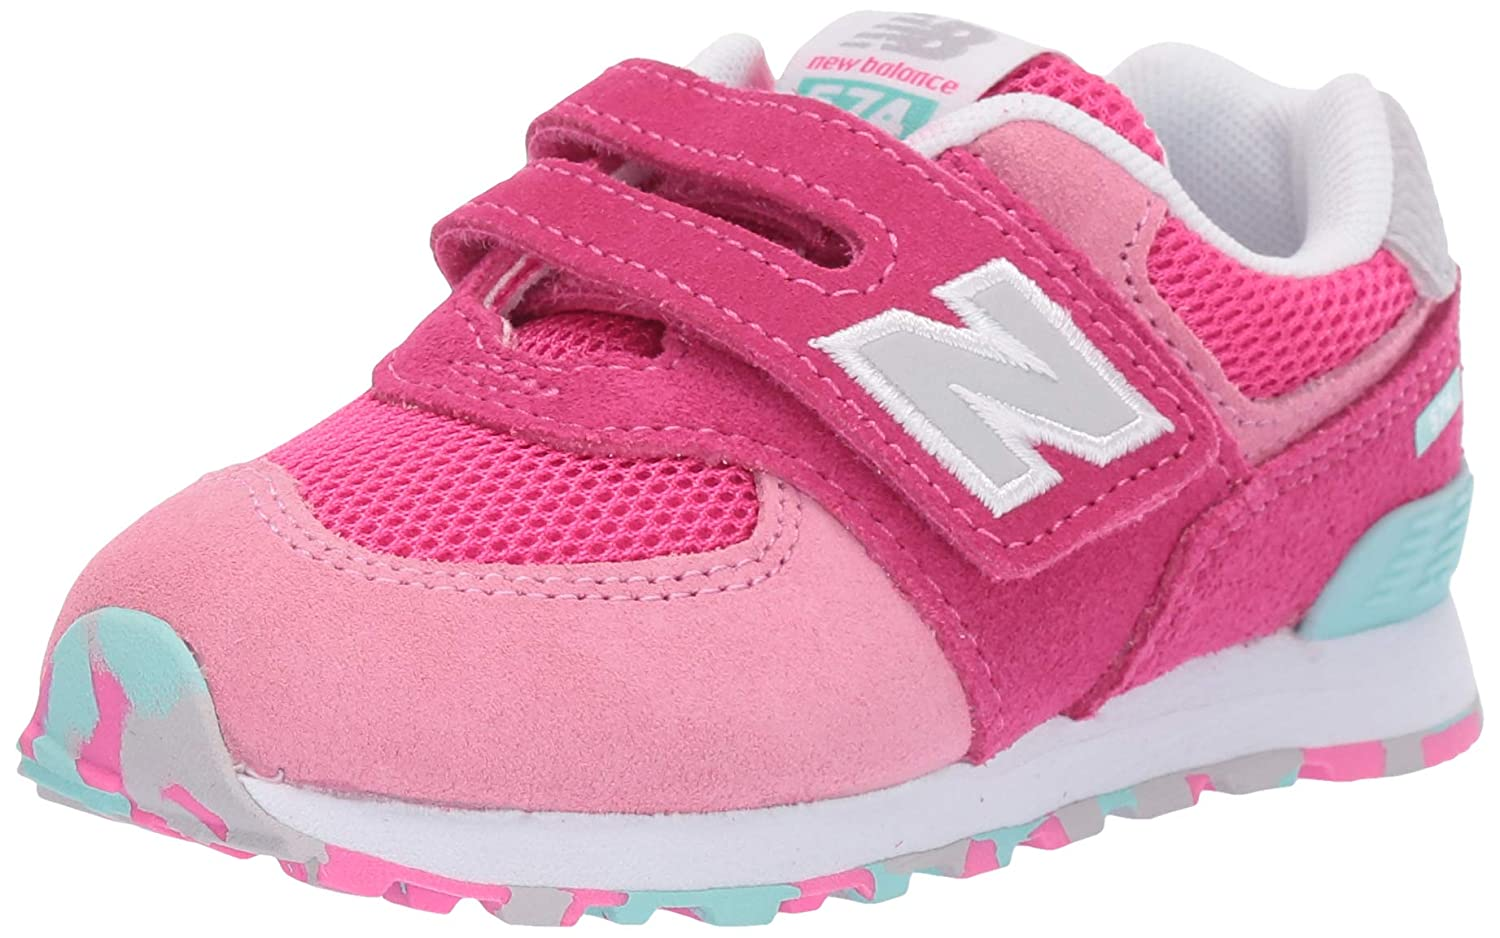 quality design addd6 88e77 Amazon.com   New Balance Kids  Iconic 574 Hook and Loop Sneaker   Shoes